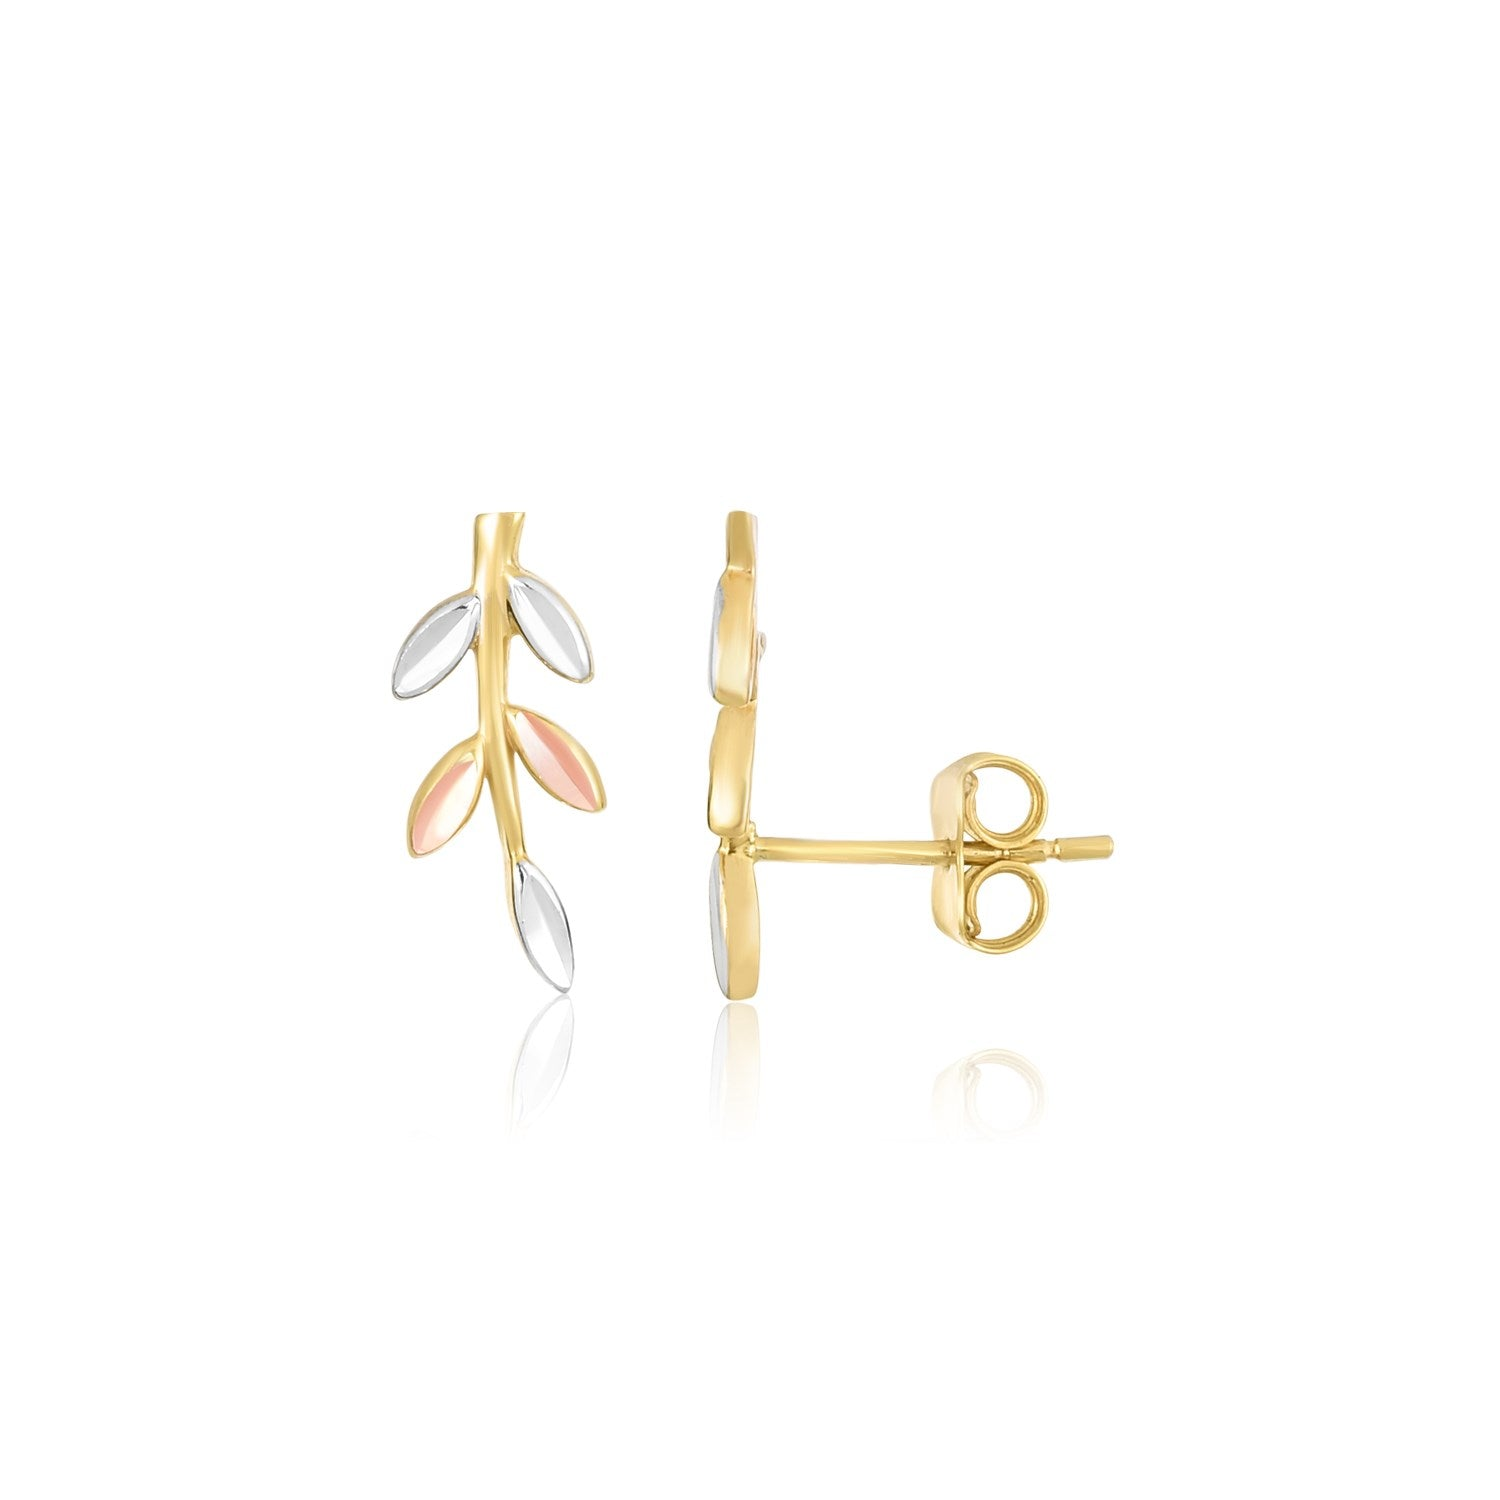 Unique Hollywood Style 14K Tri-Color Gold Sprig Climber Style Stud Earrings